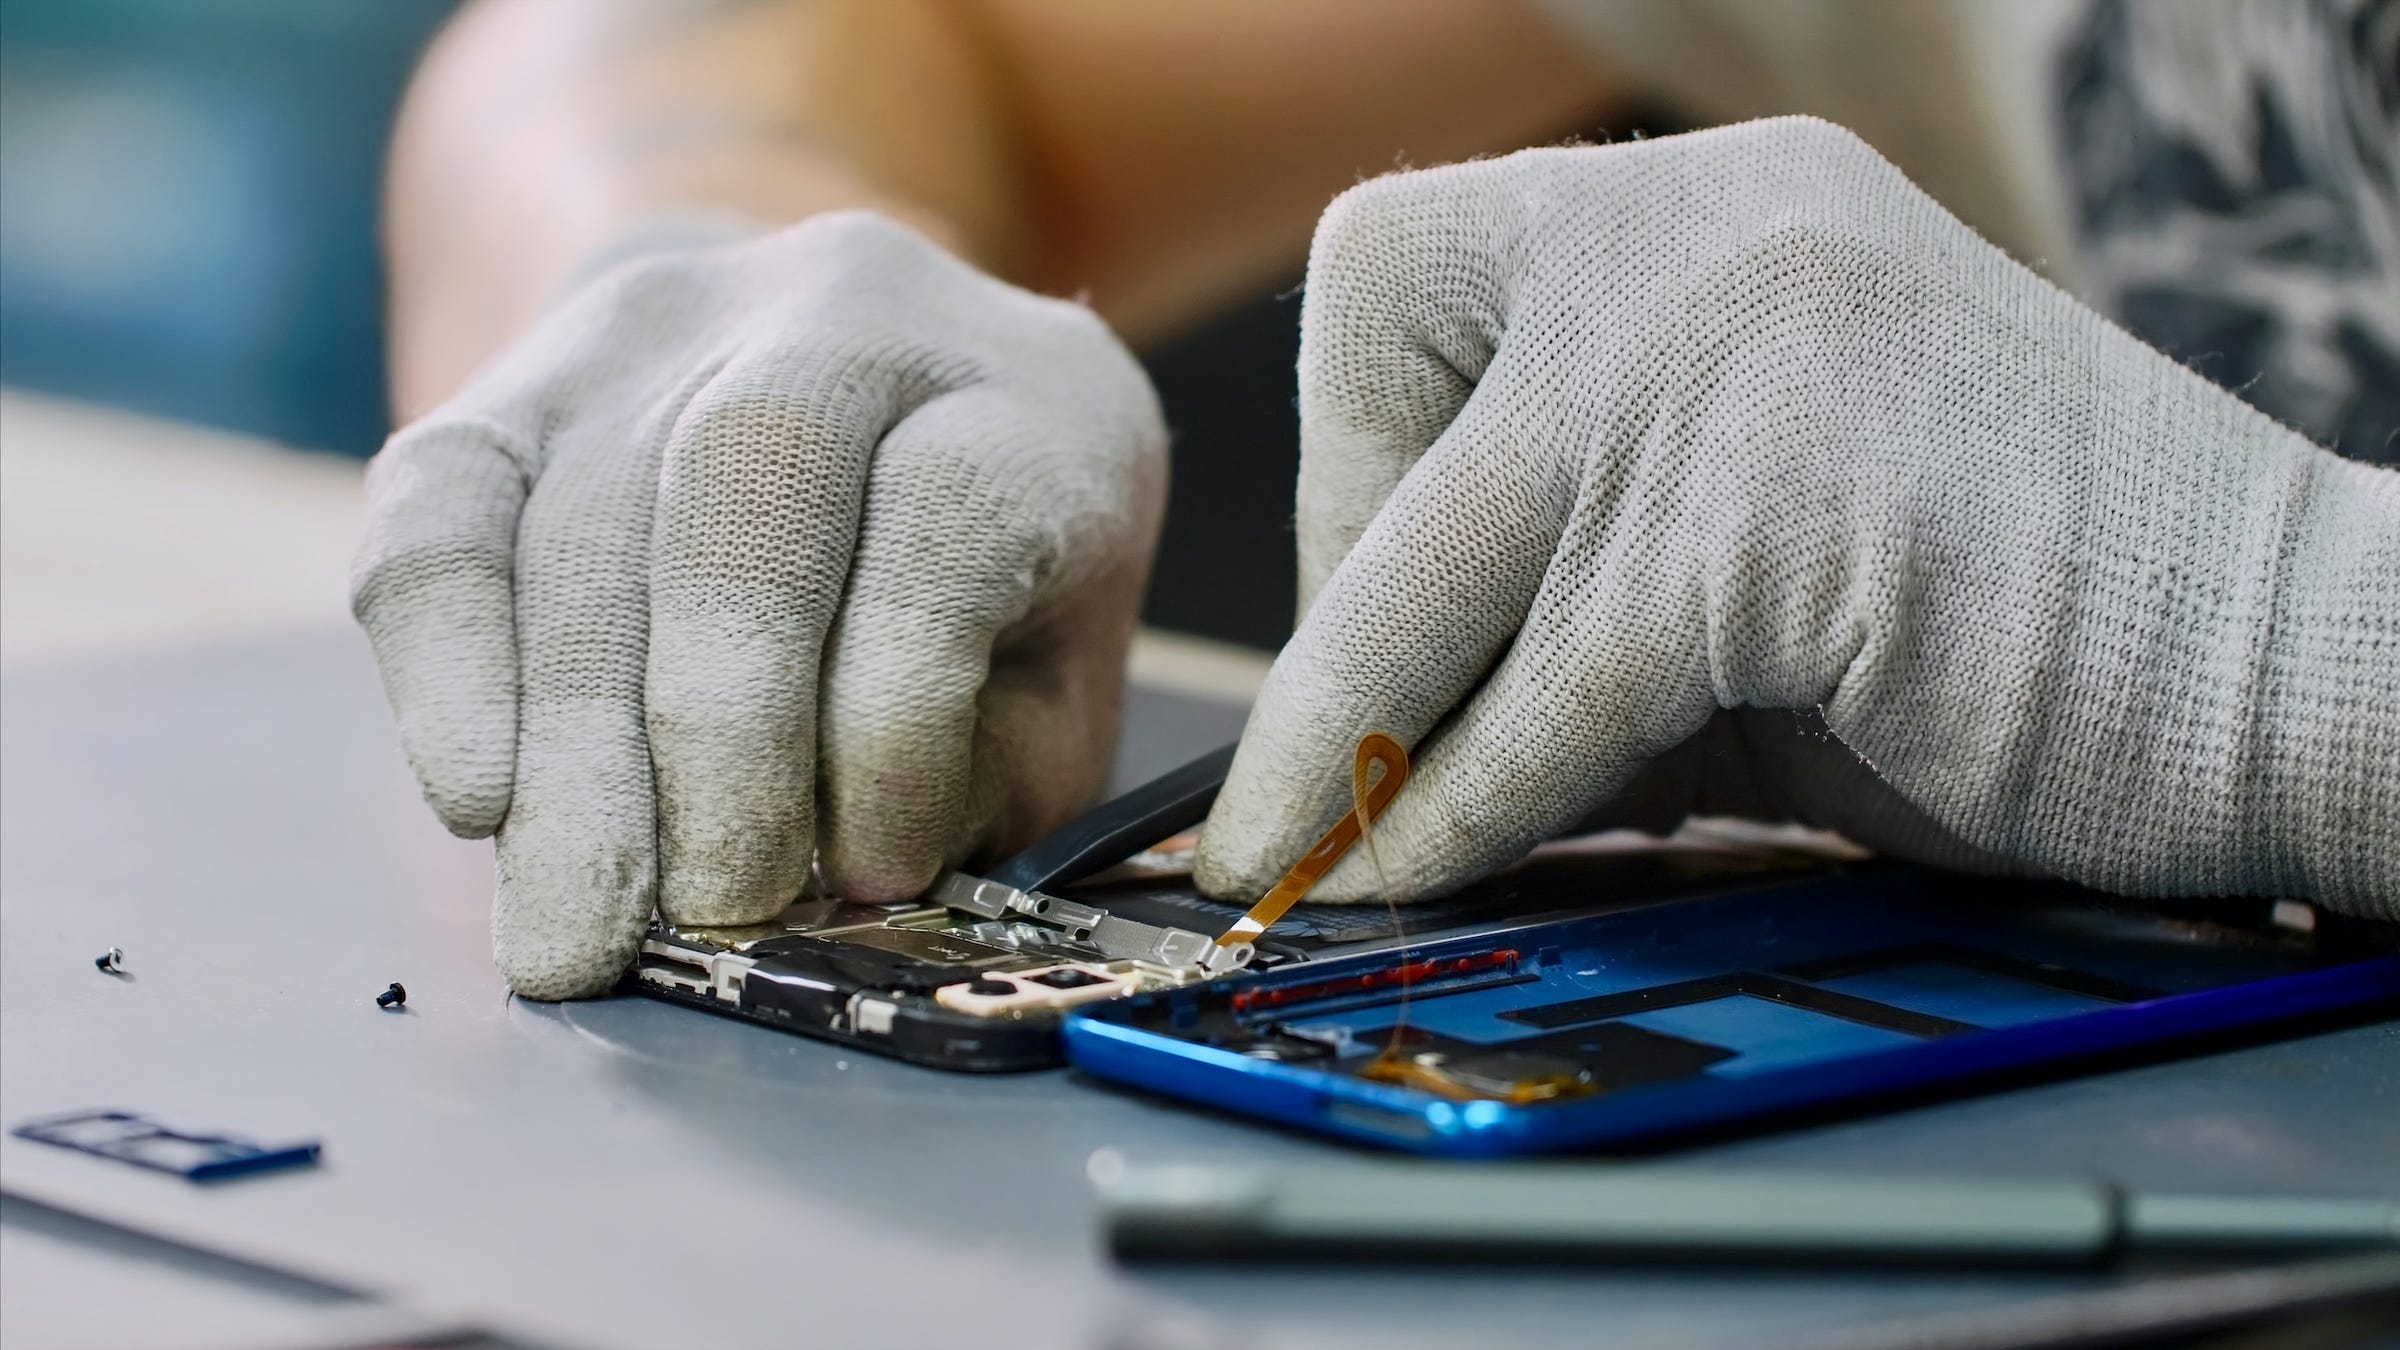 tech hands working on smartphone replacing parts refurbished